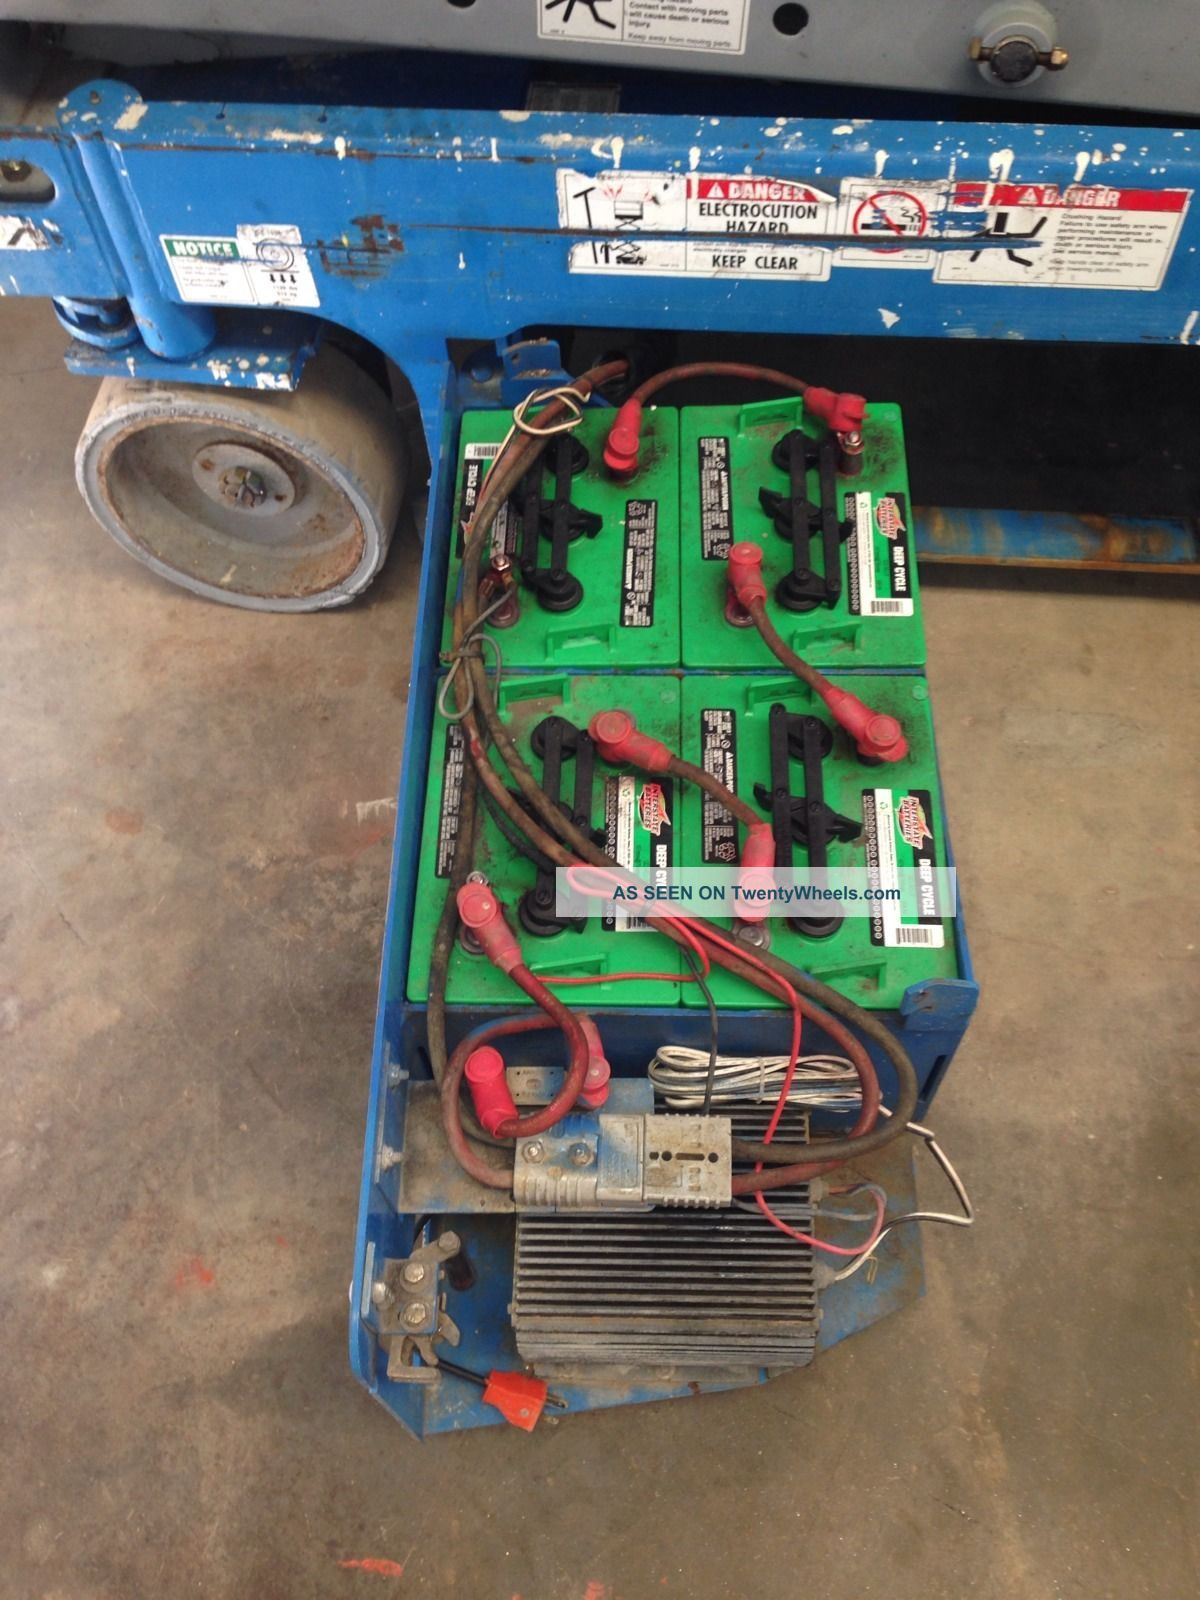 Upright Scissor Lift Battery Hook Up Auto Electrical Wiring Diagram EZ Wiring  Harness 2005 C4500 Wiring Diagram Battery